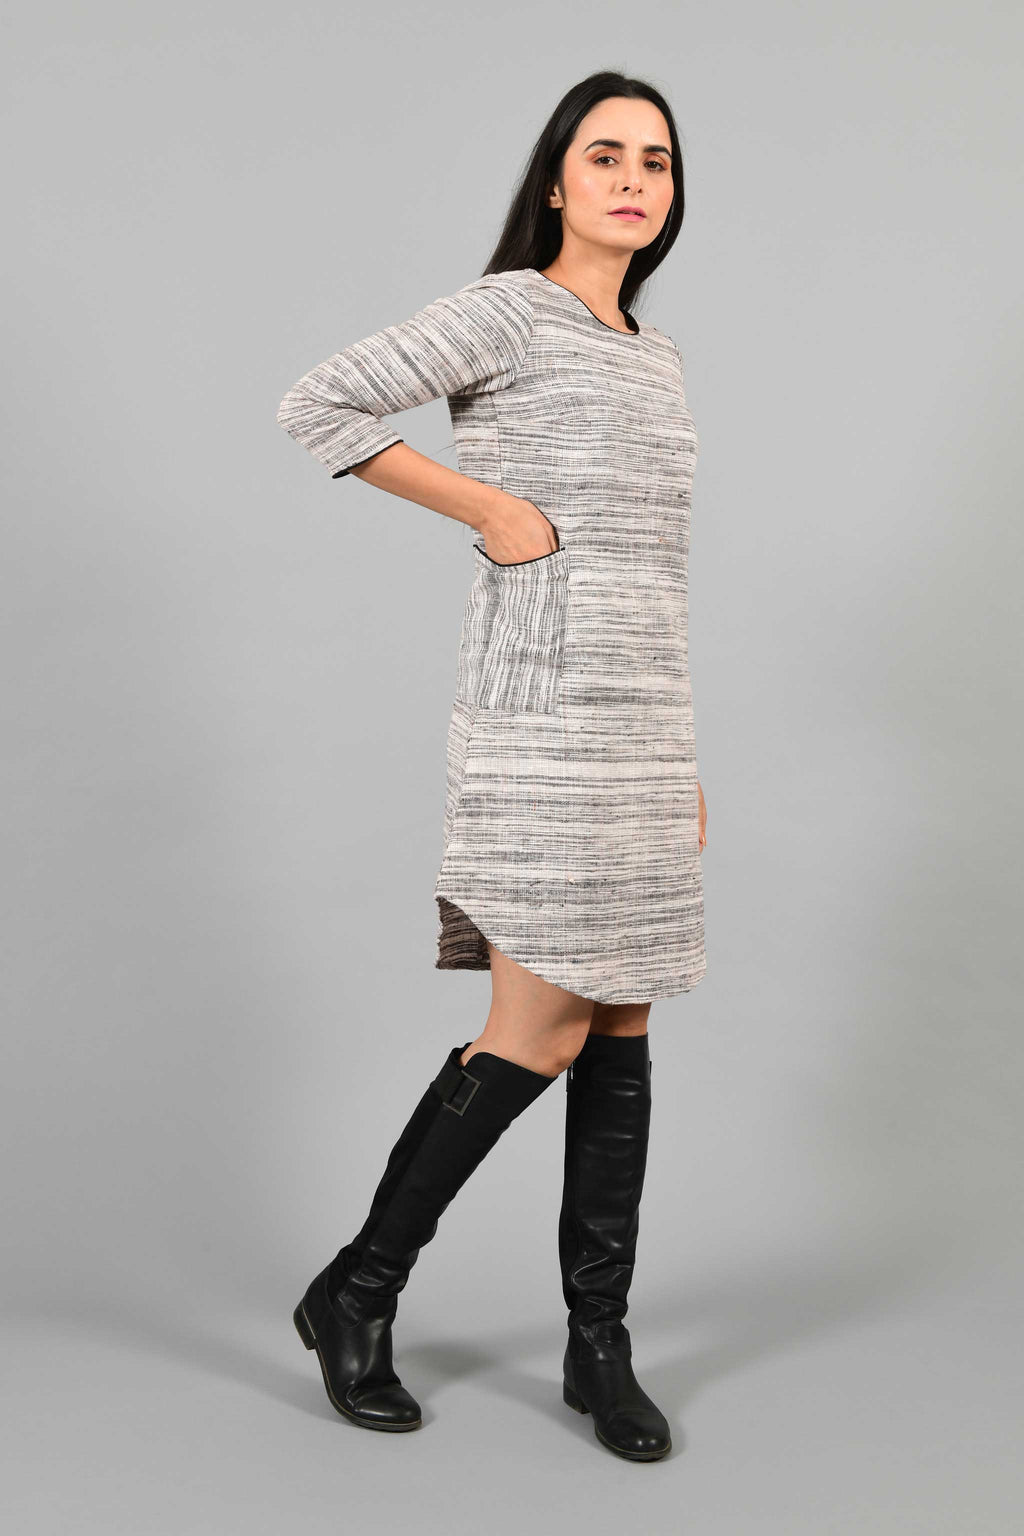 Side pose of an Indian Womenswear female model wearing Beige Brown handspun and handwoven cotton dress by Cotton Rack.